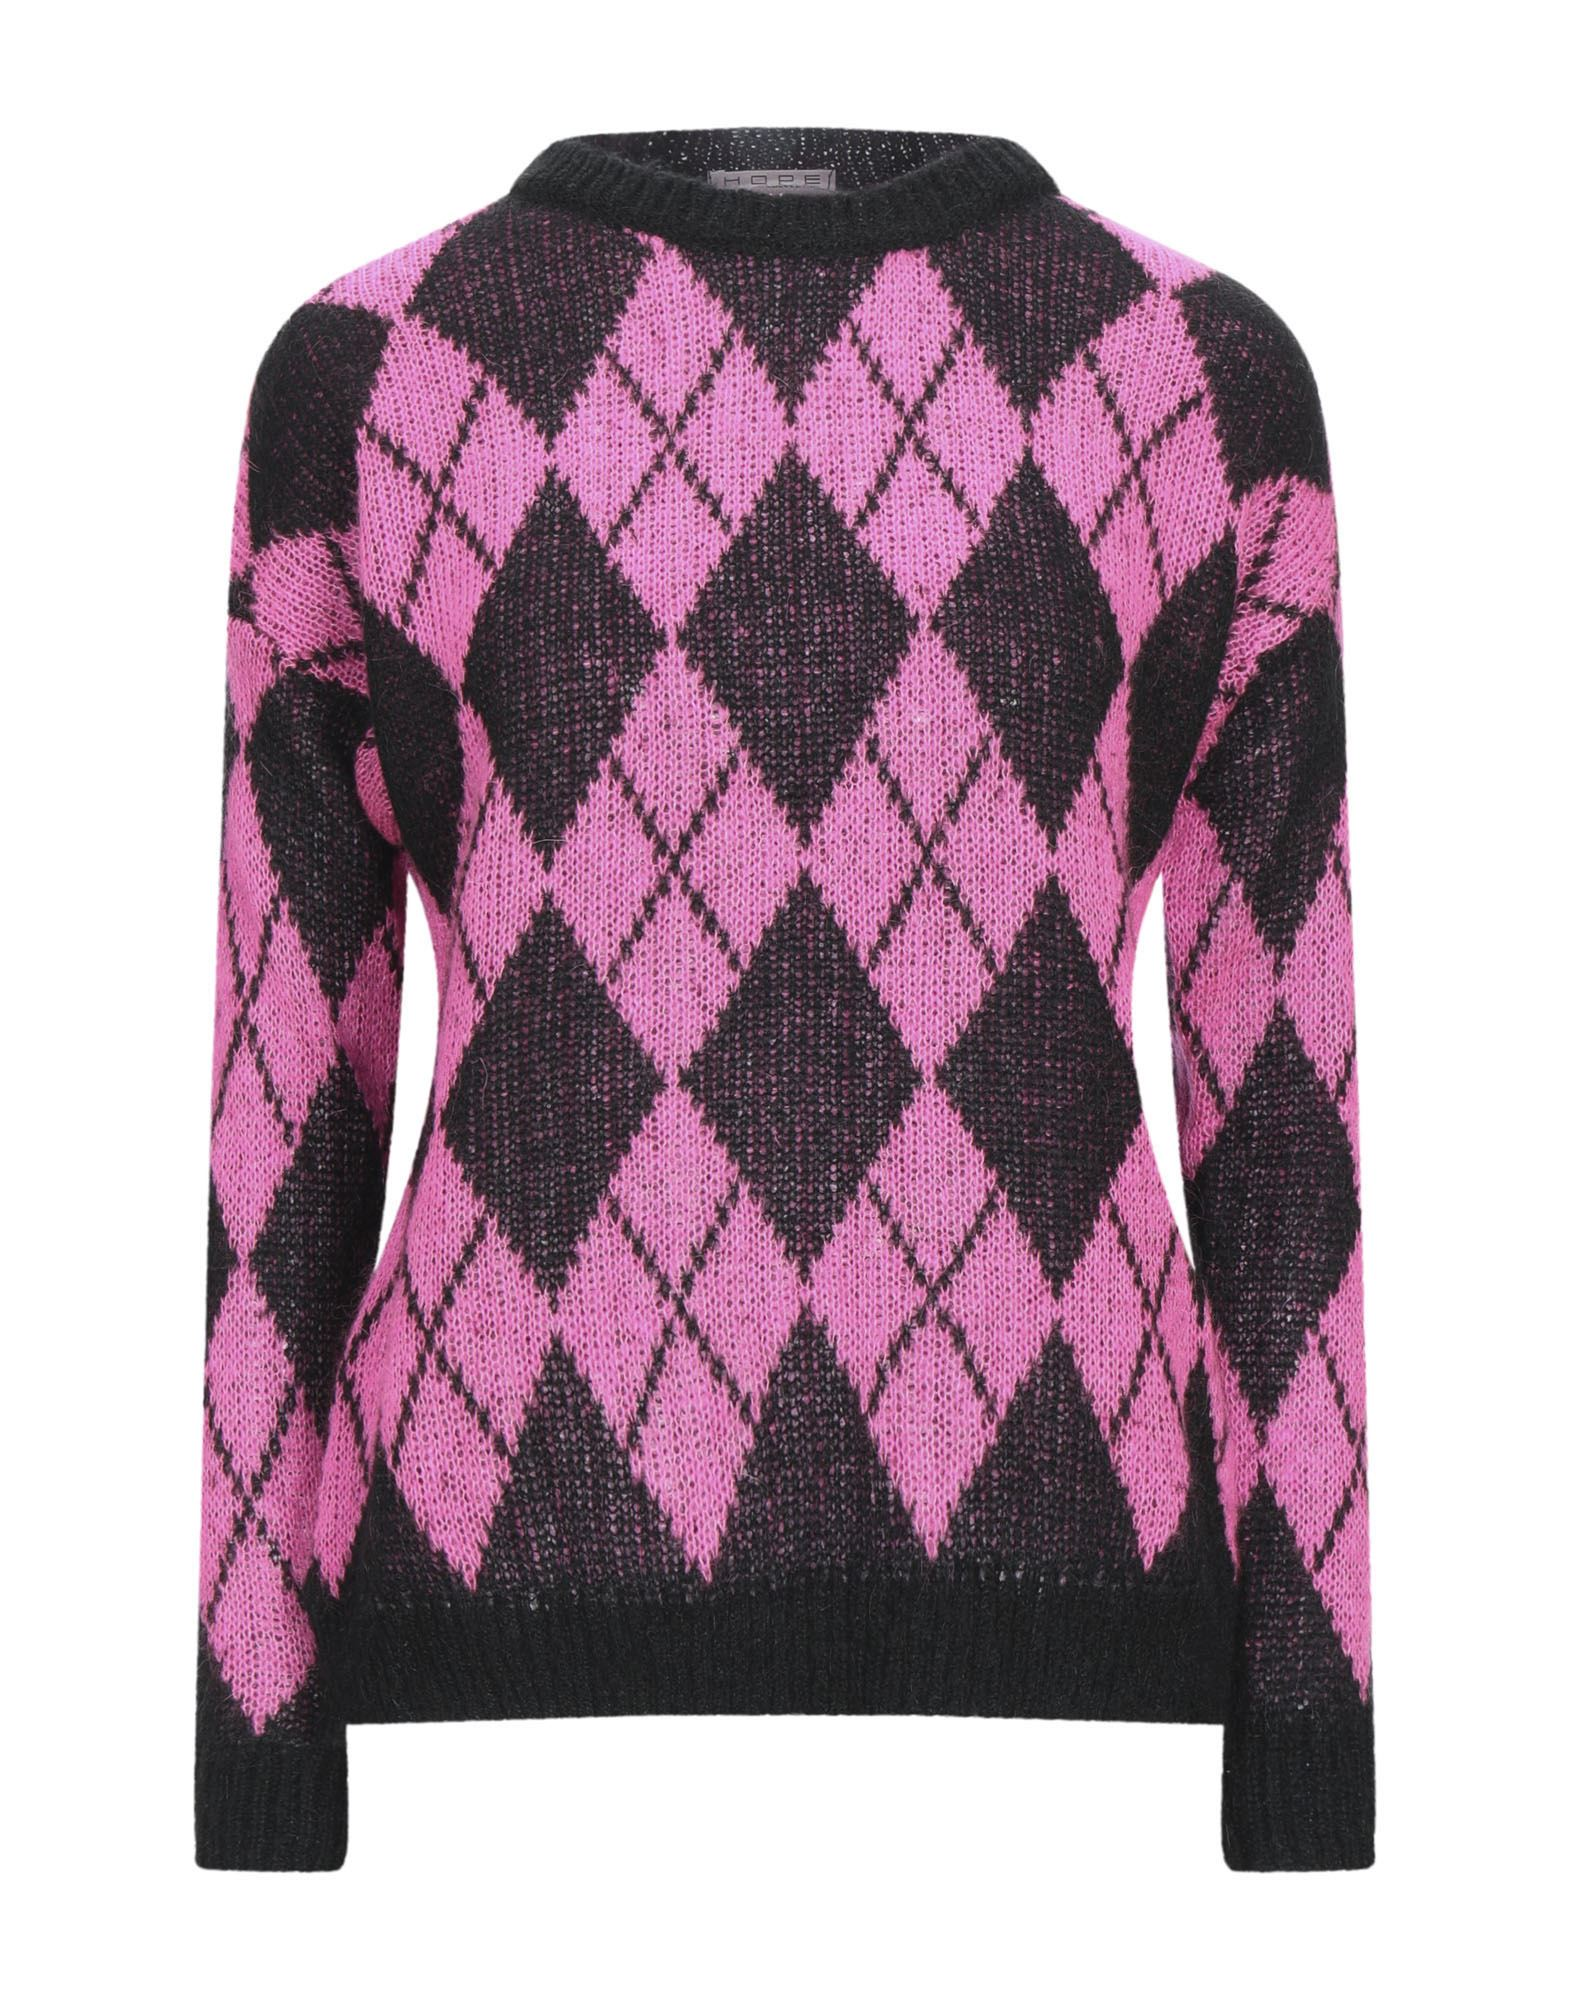 HOPE COLLECTION Sweaters - Item 14099146